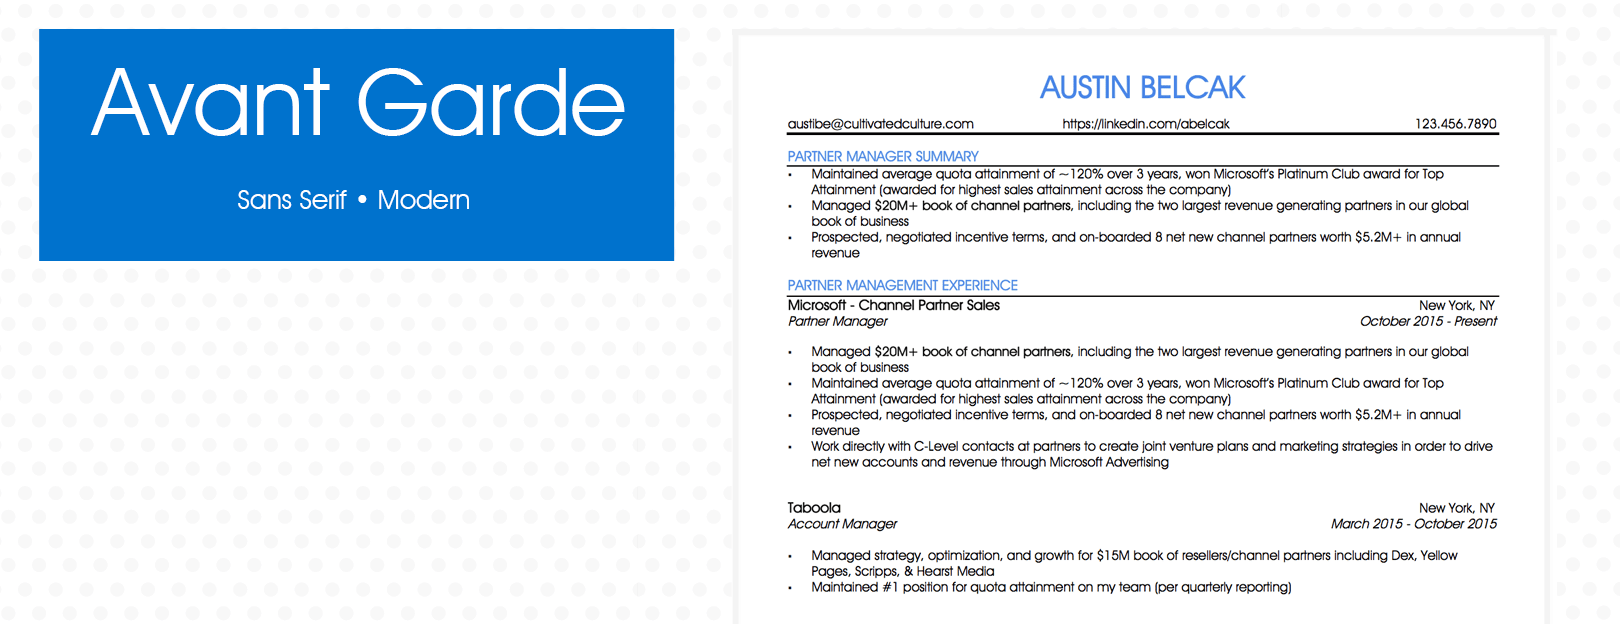 Example of Avant Garde Font For Resume - Cultivated Culture